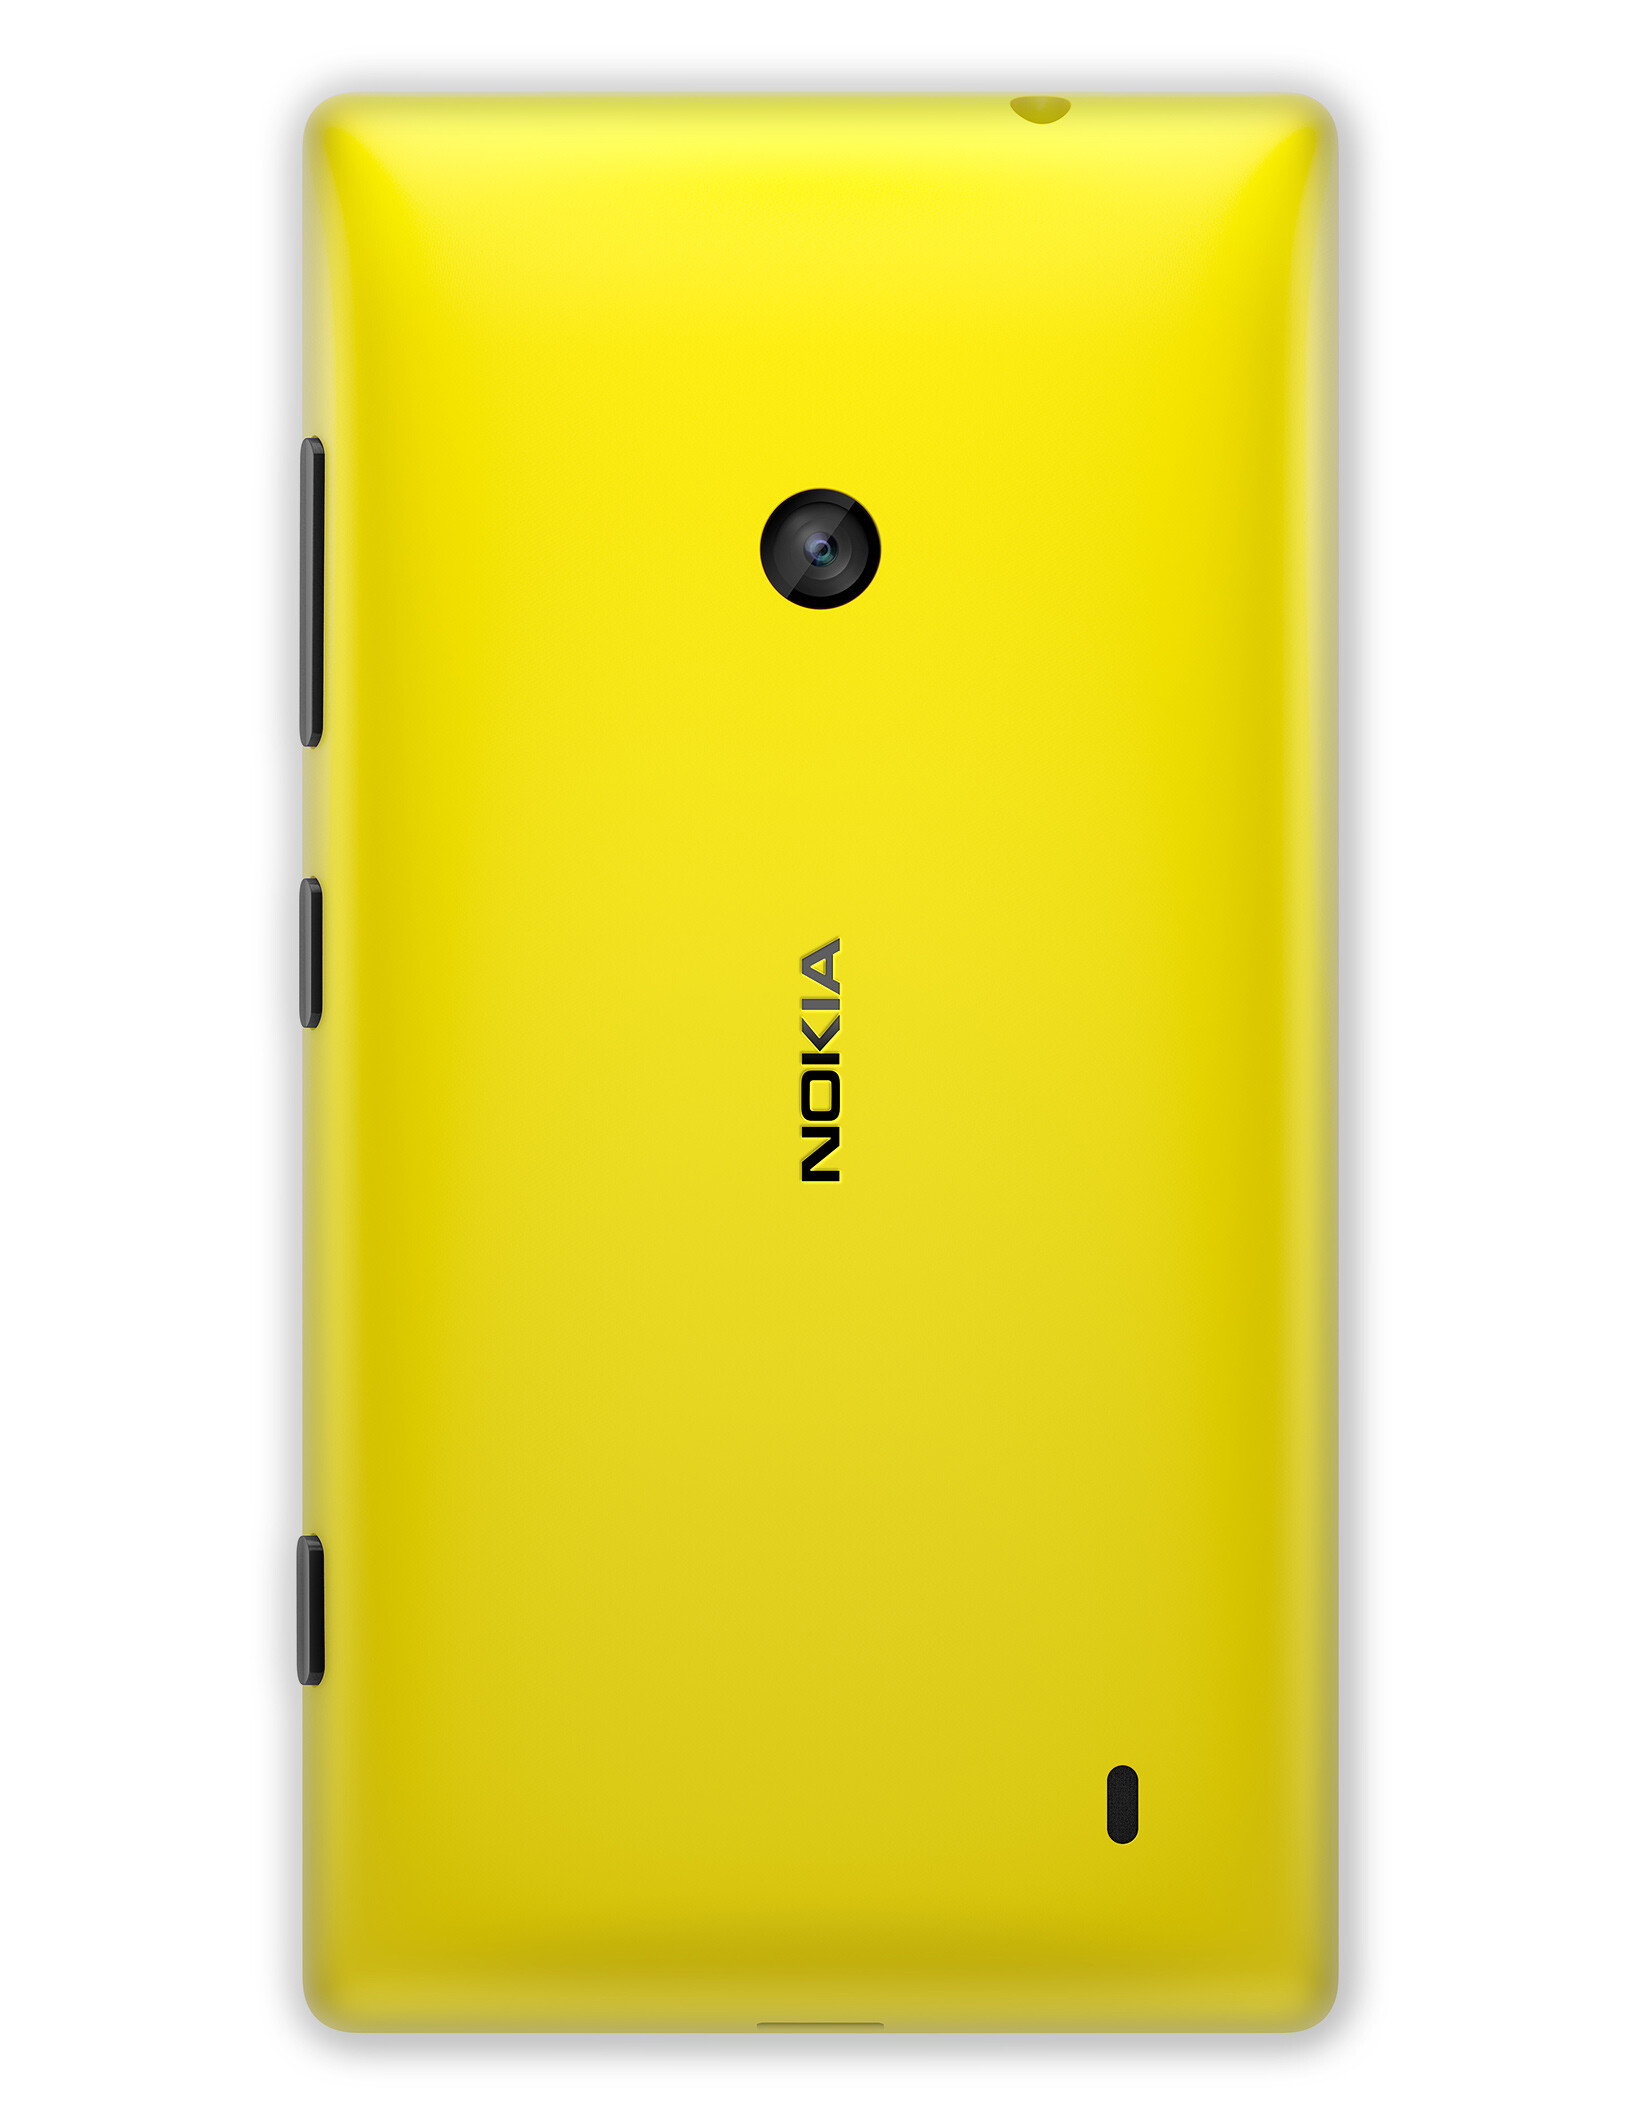 Getting P6083 as model name for nokia lumia 625 using PnpObject Device Container